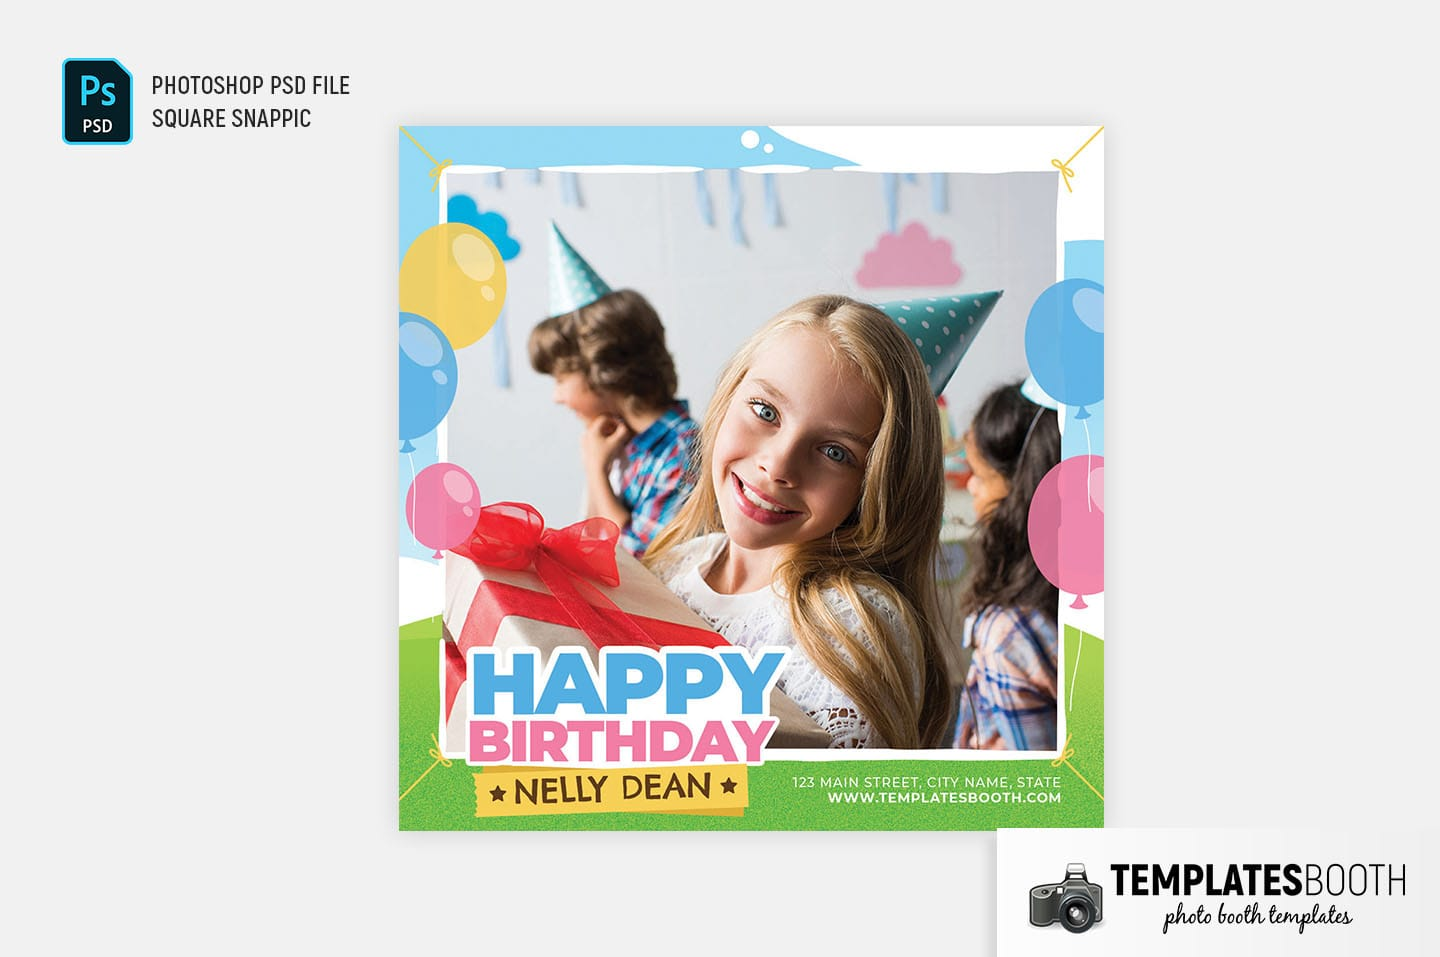 Happy Birthday Photo Booth Template (Snappic)